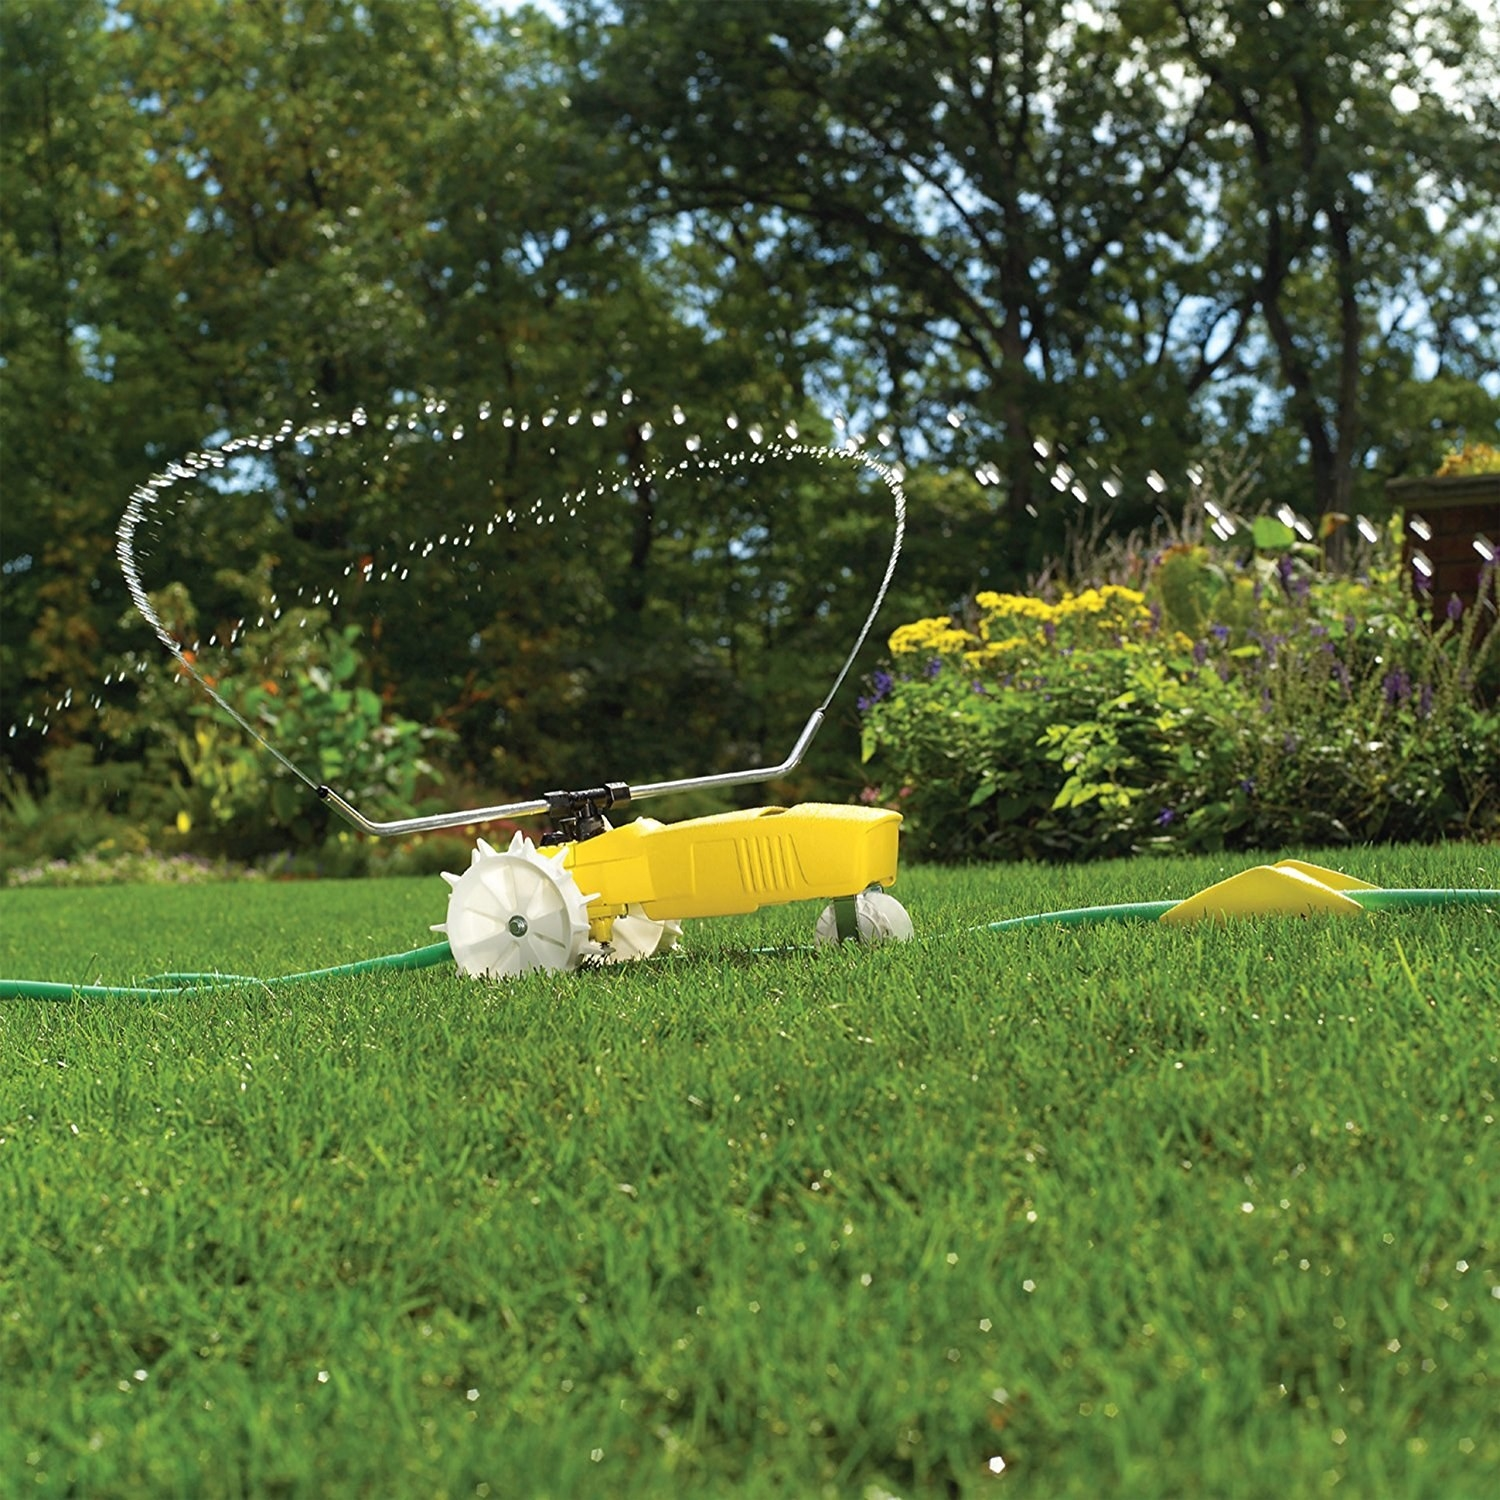 A three-wheeled yellow sprinkler attached to a hose spraying water